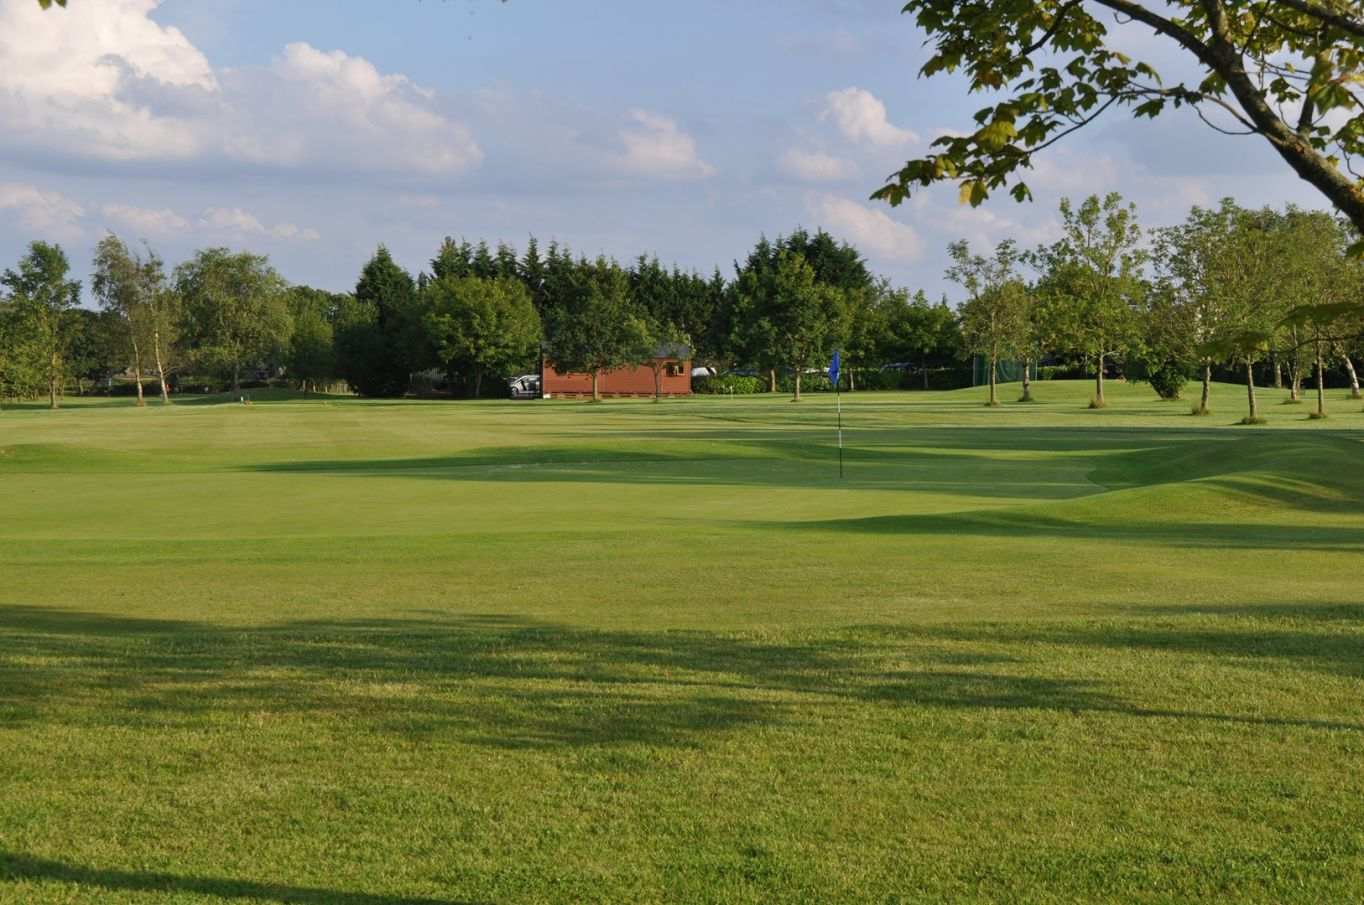 Charnock Richard Golf Club